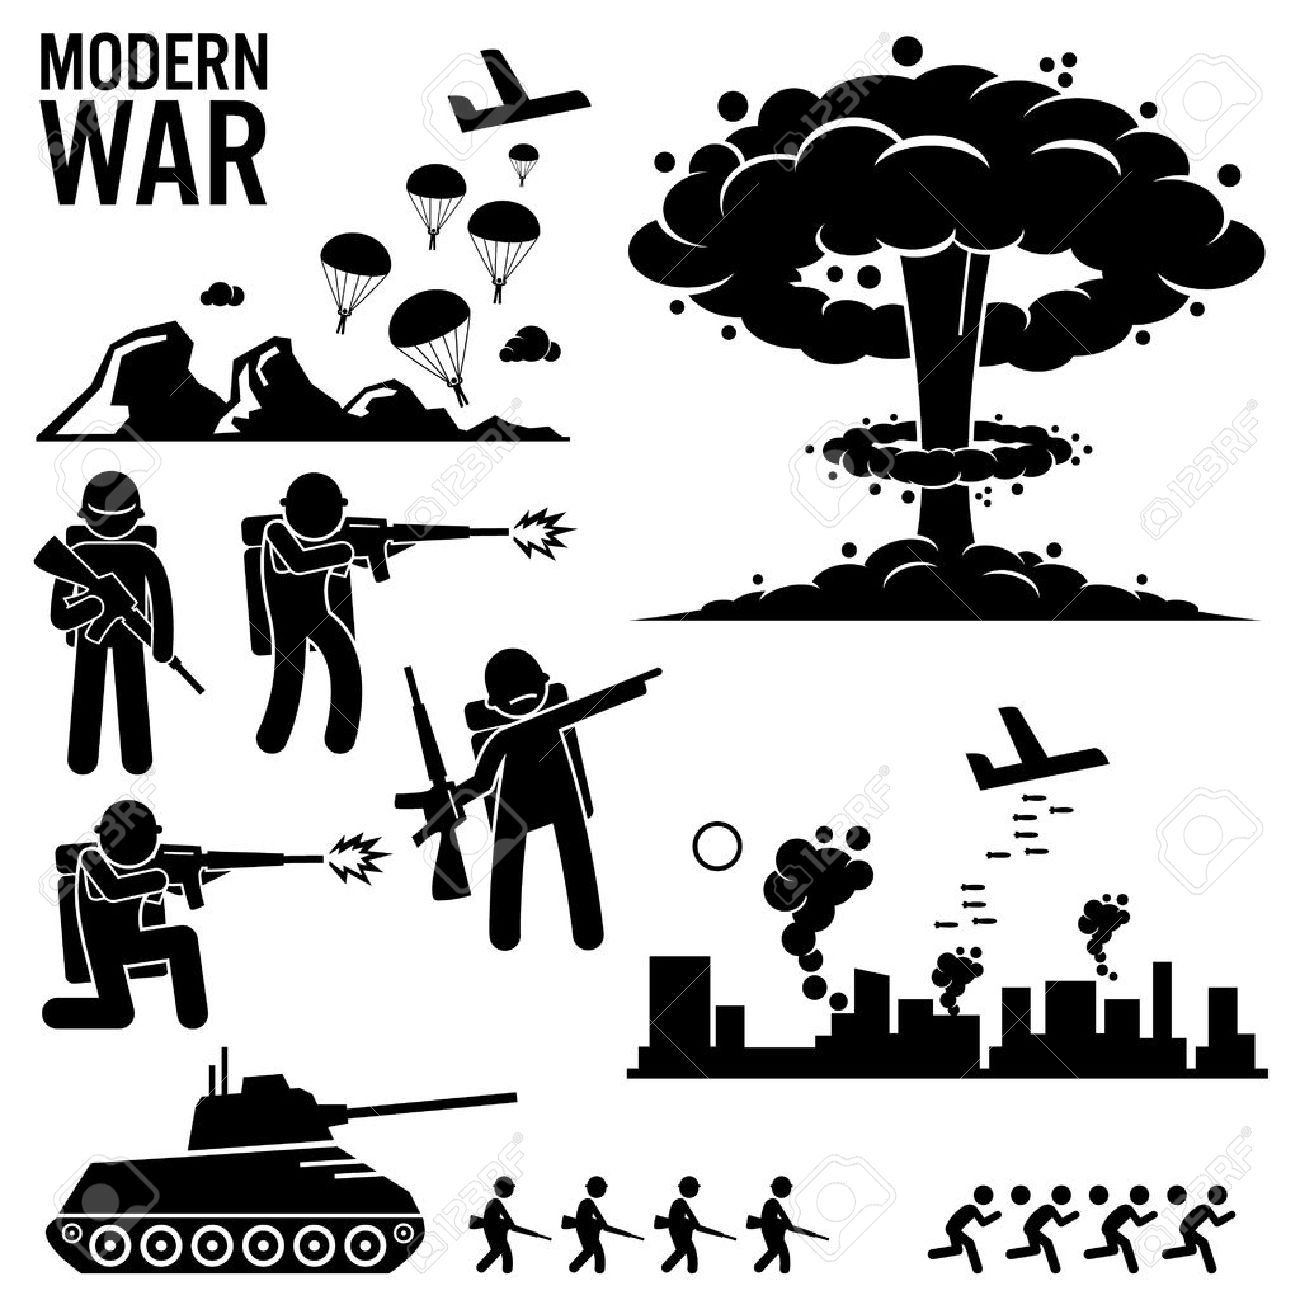 War Modern Warfare Nuclear Bomb Soldier Tank Attack Stick Figure Pictogram Icons - 48512338